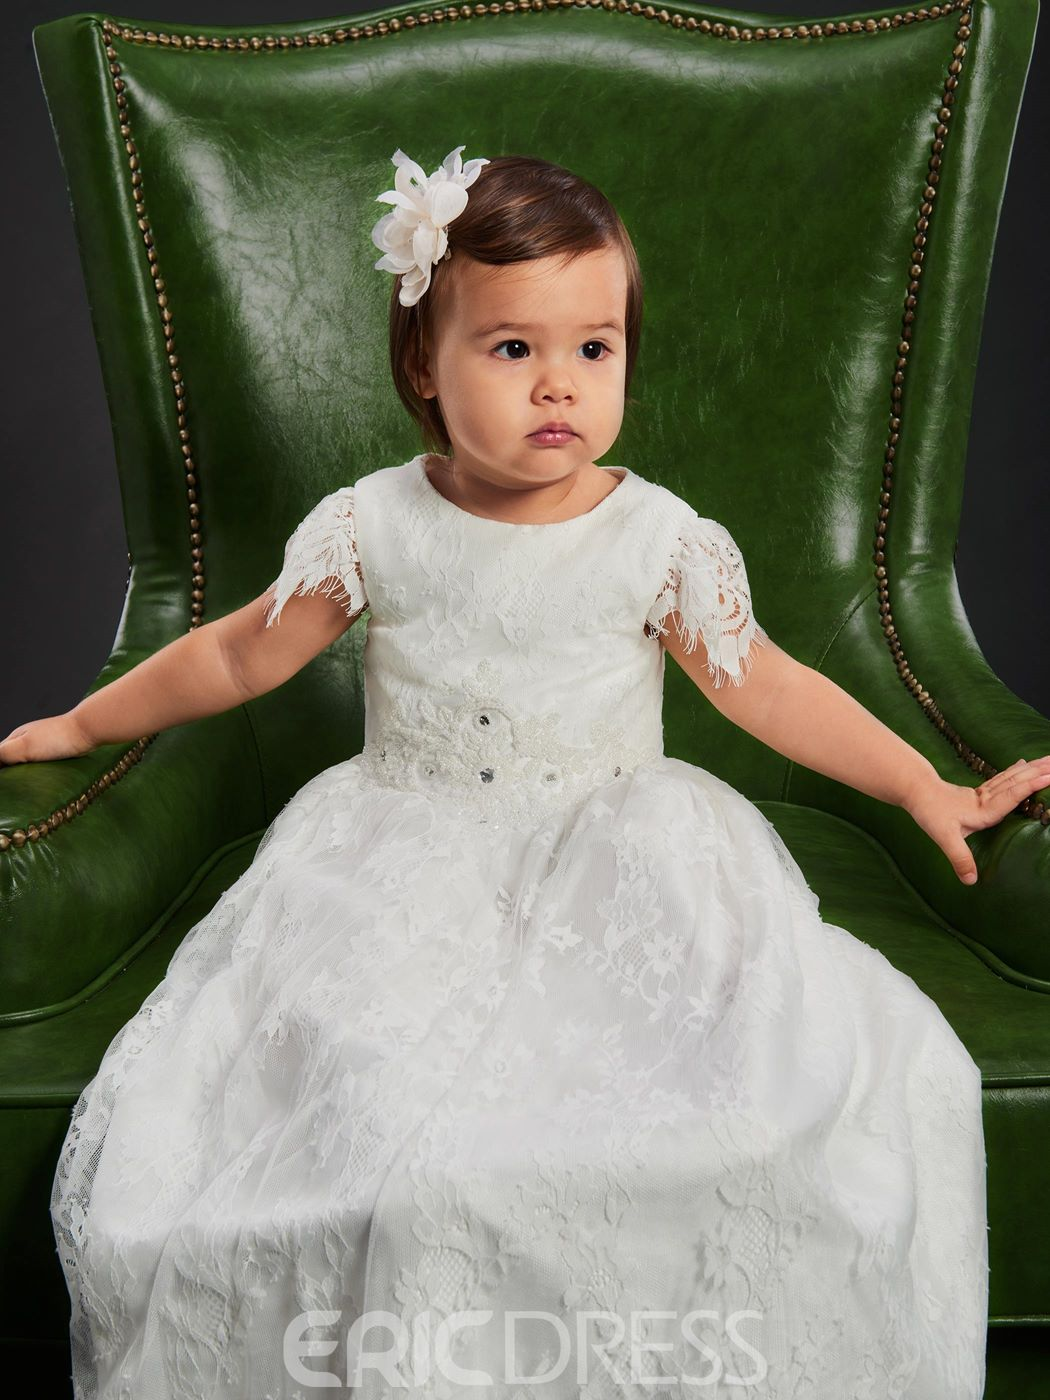 Ericdress Cap Sleebe Baby Girls Lace Christening Baptism Gown